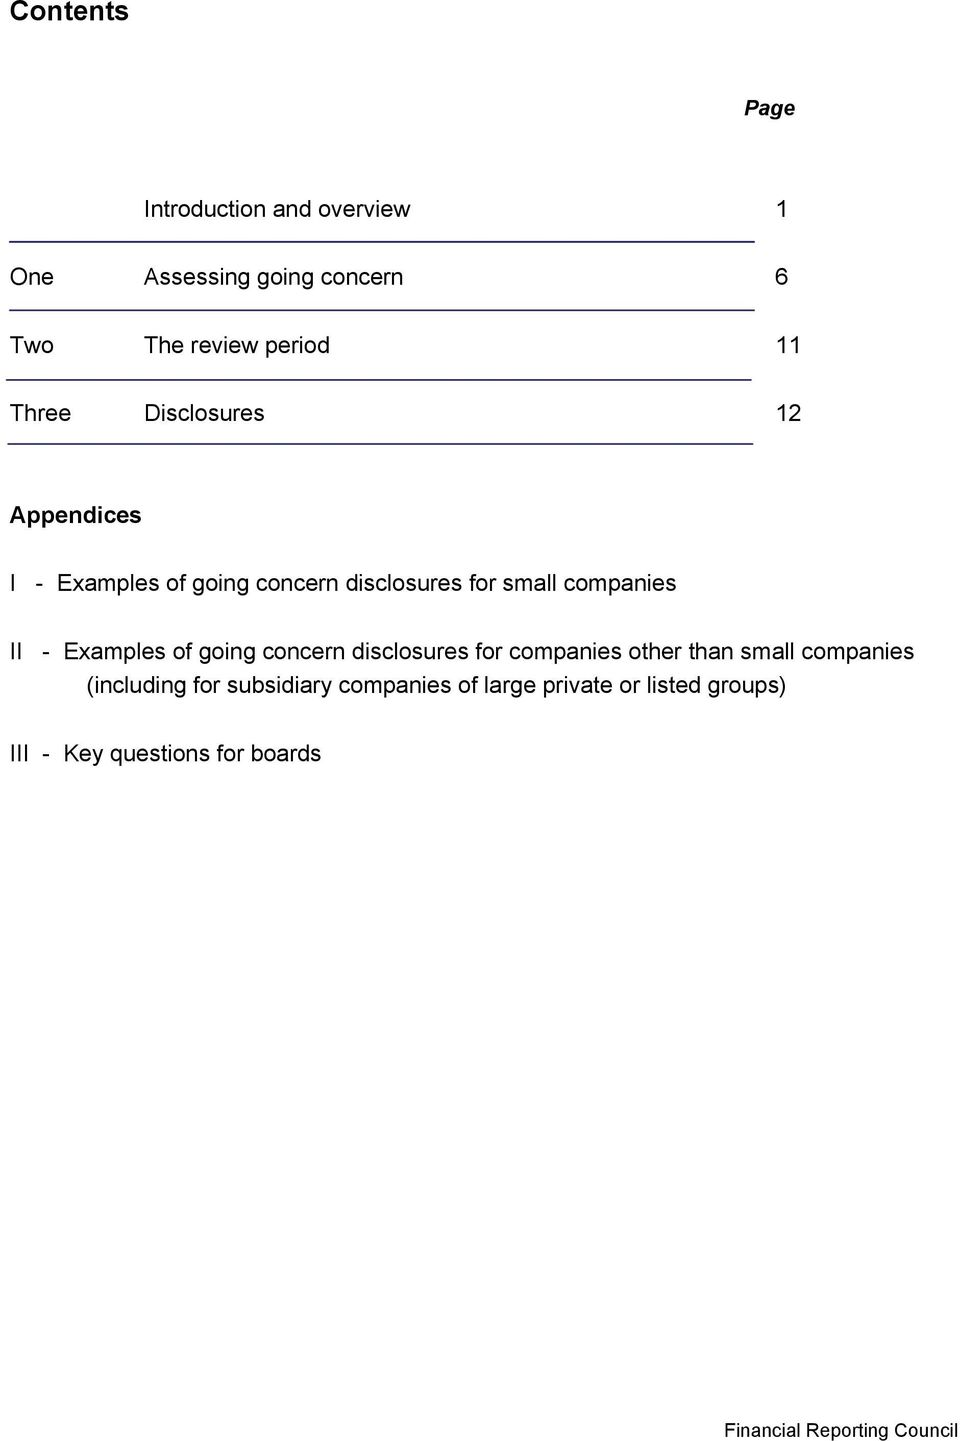 Examples of going concern disclosures for companies other than small companies (including for